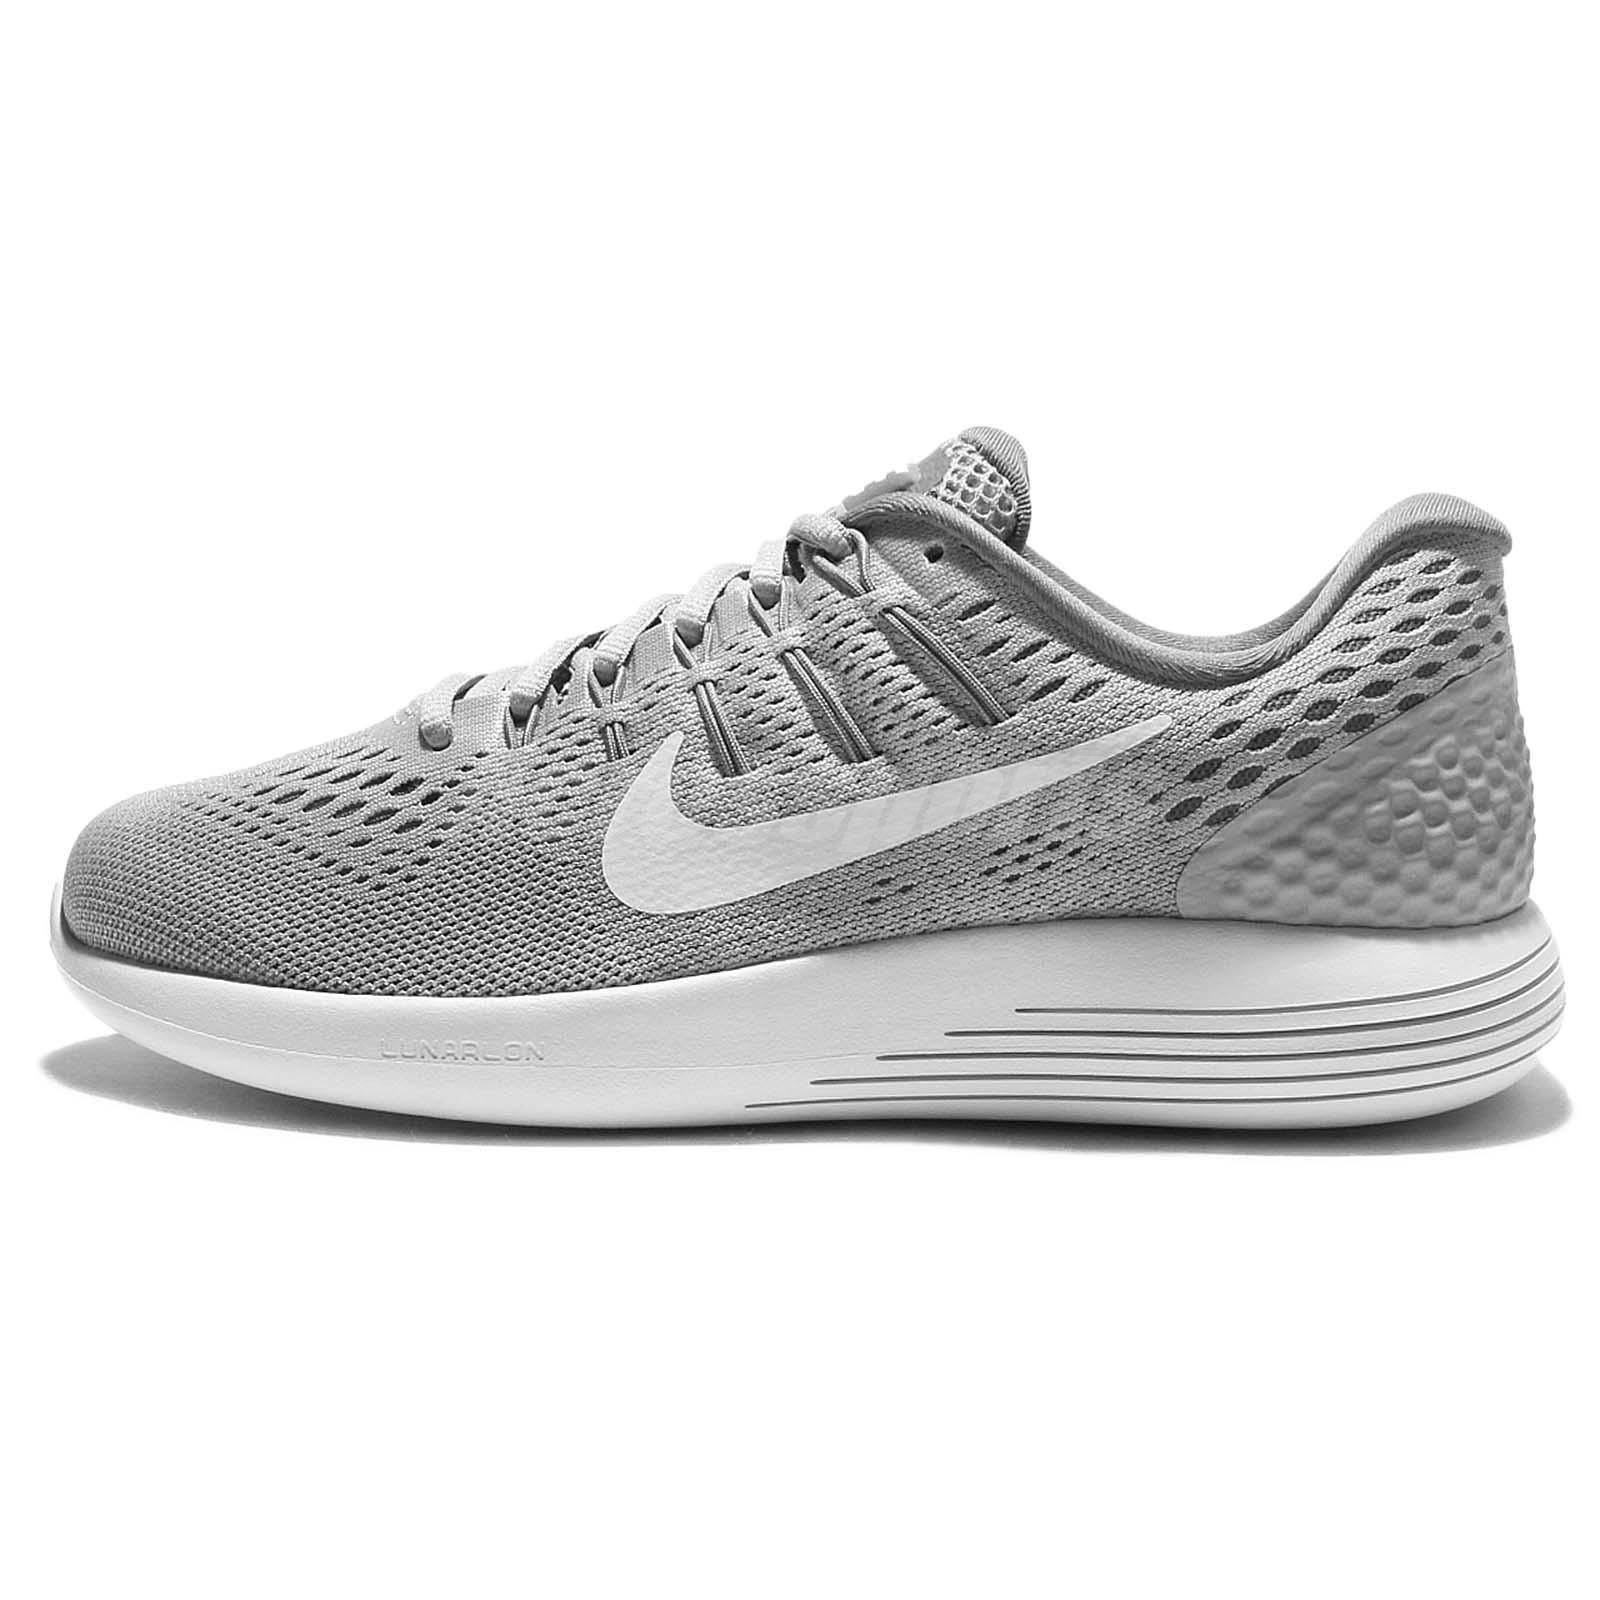 1ce8acdc75a4 ... Wmns Nike Lunarglide 8 VIII Grey White Womens Running Shoes Sneakers  843726-002 ...